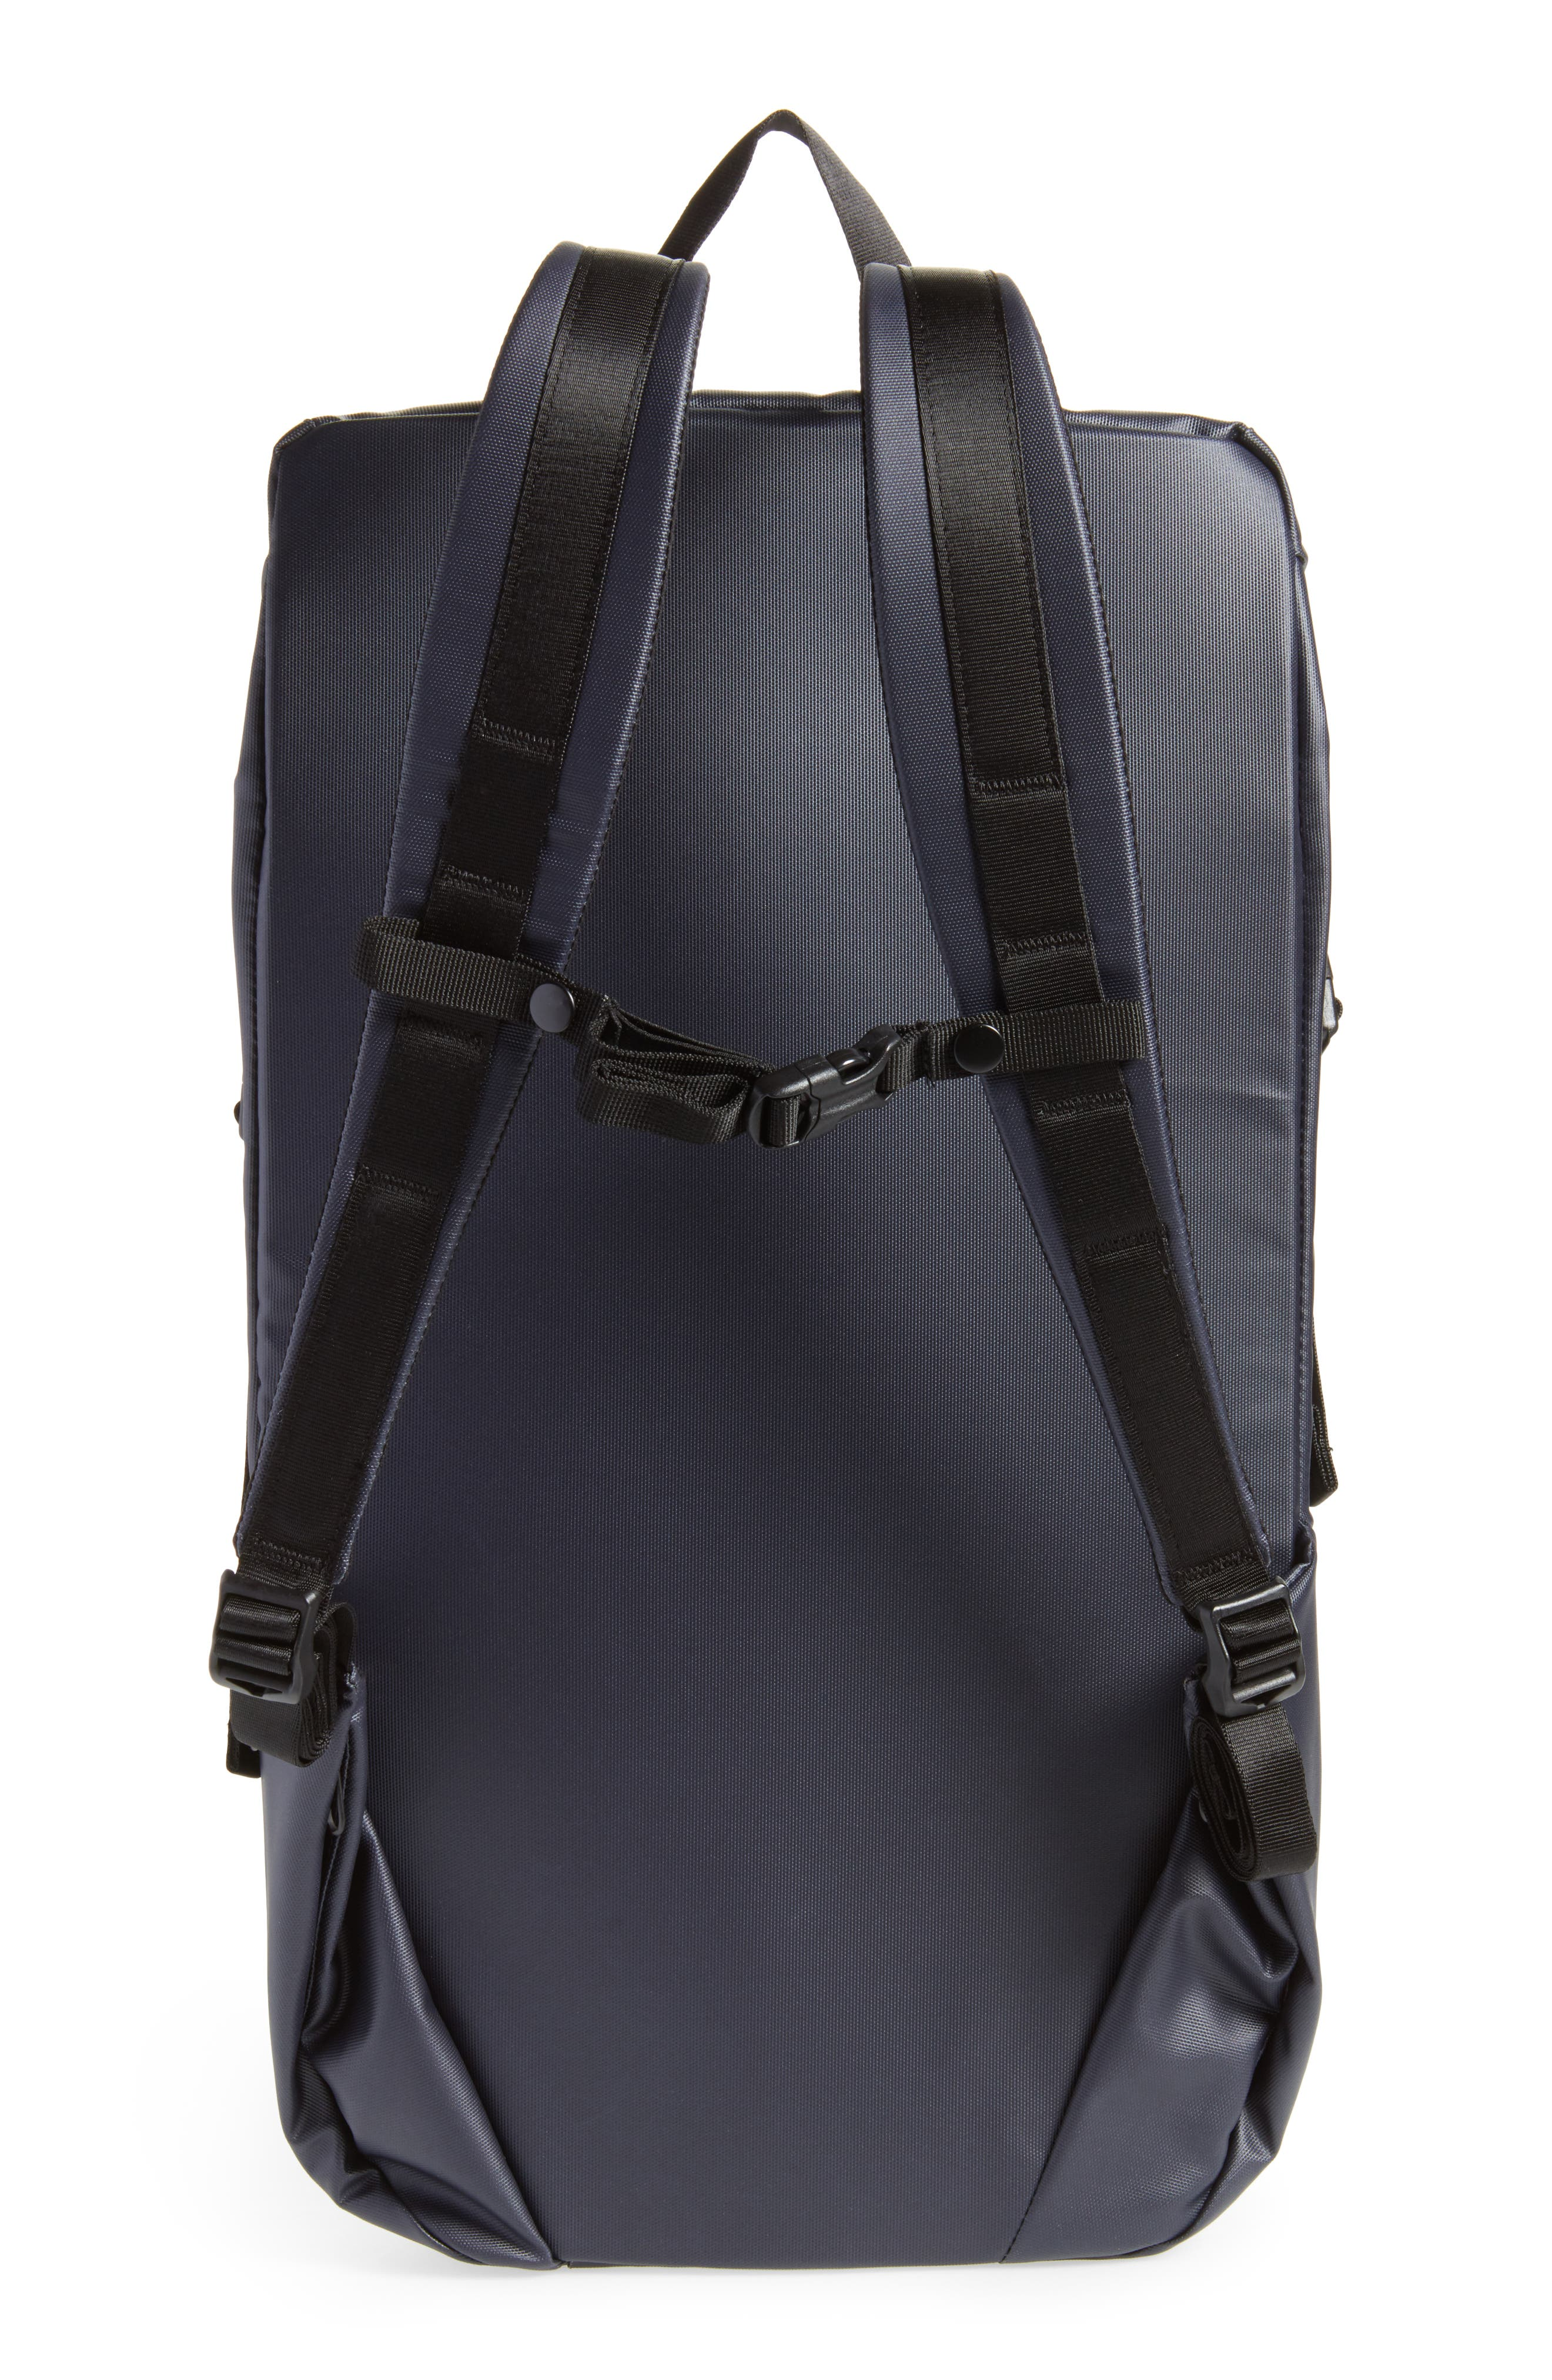 Quick Pack Backpack,                             Alternate thumbnail 6, color,